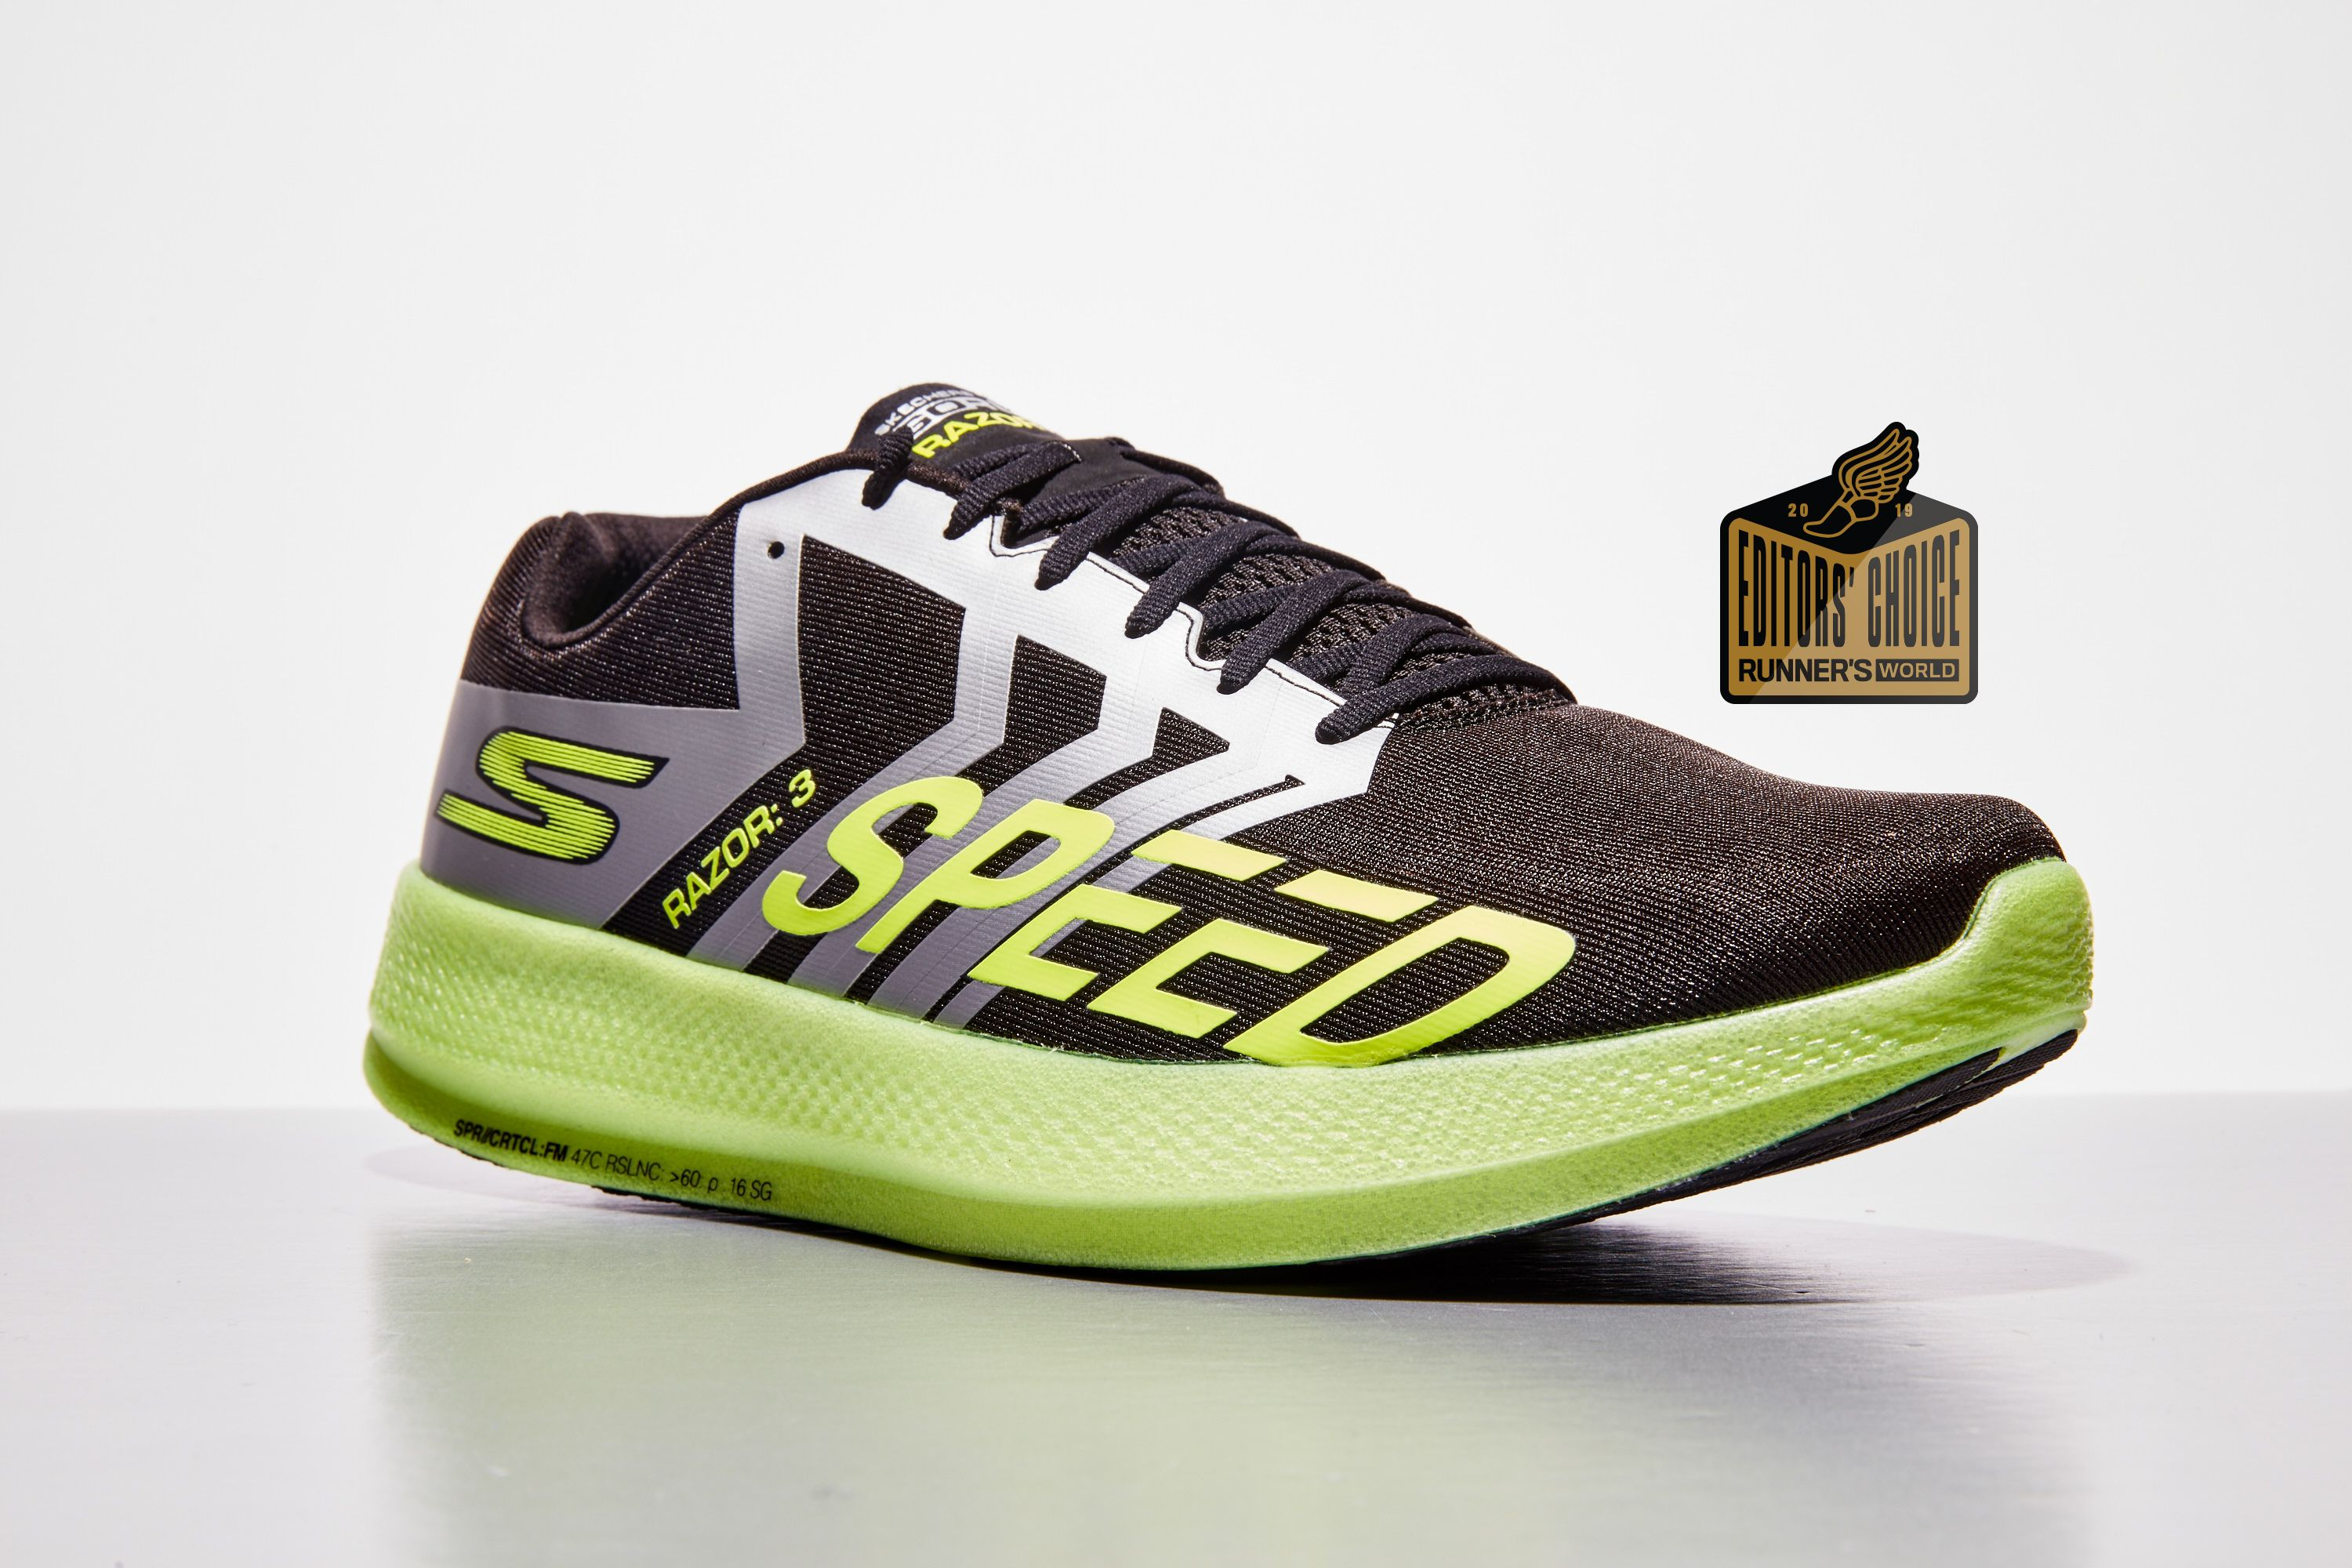 2161b045 Skechers Shakes Up the Performance Scene with the GOrun Razor 3 Hyper